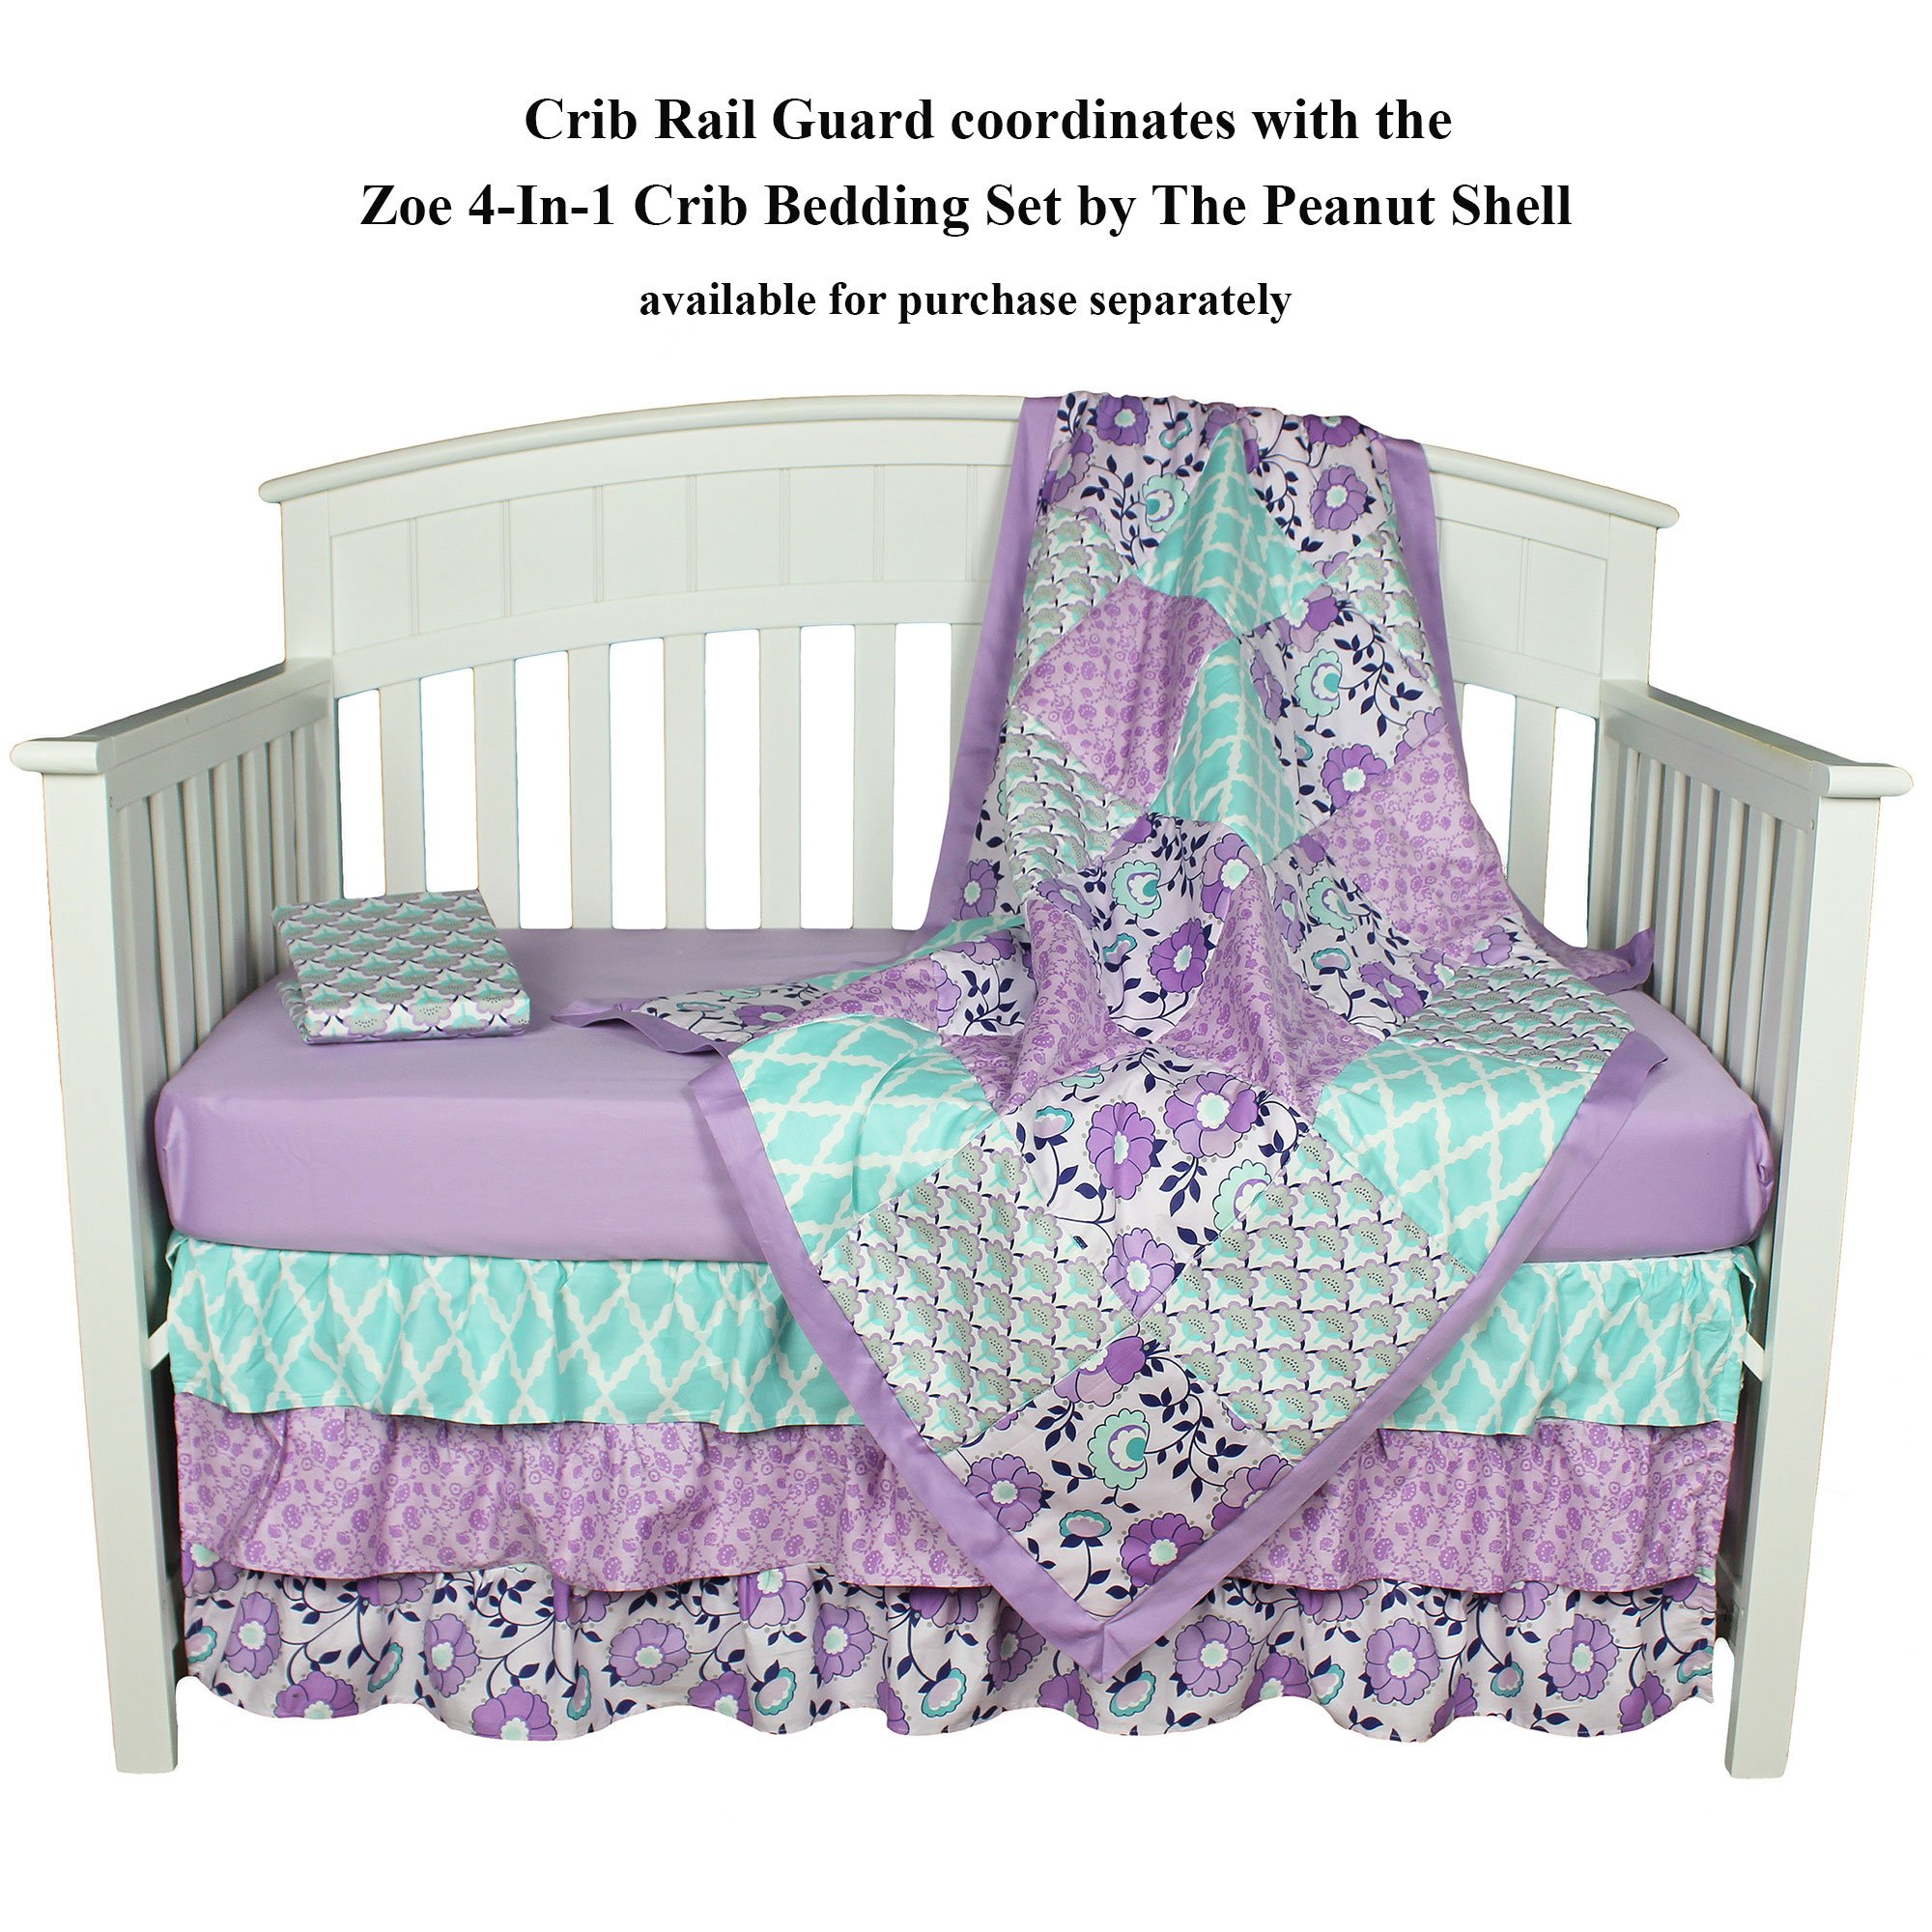 Zoe Purple Floral Crib Rail Guard by The Peanut Shell by The Peanut Shell (Image #2)